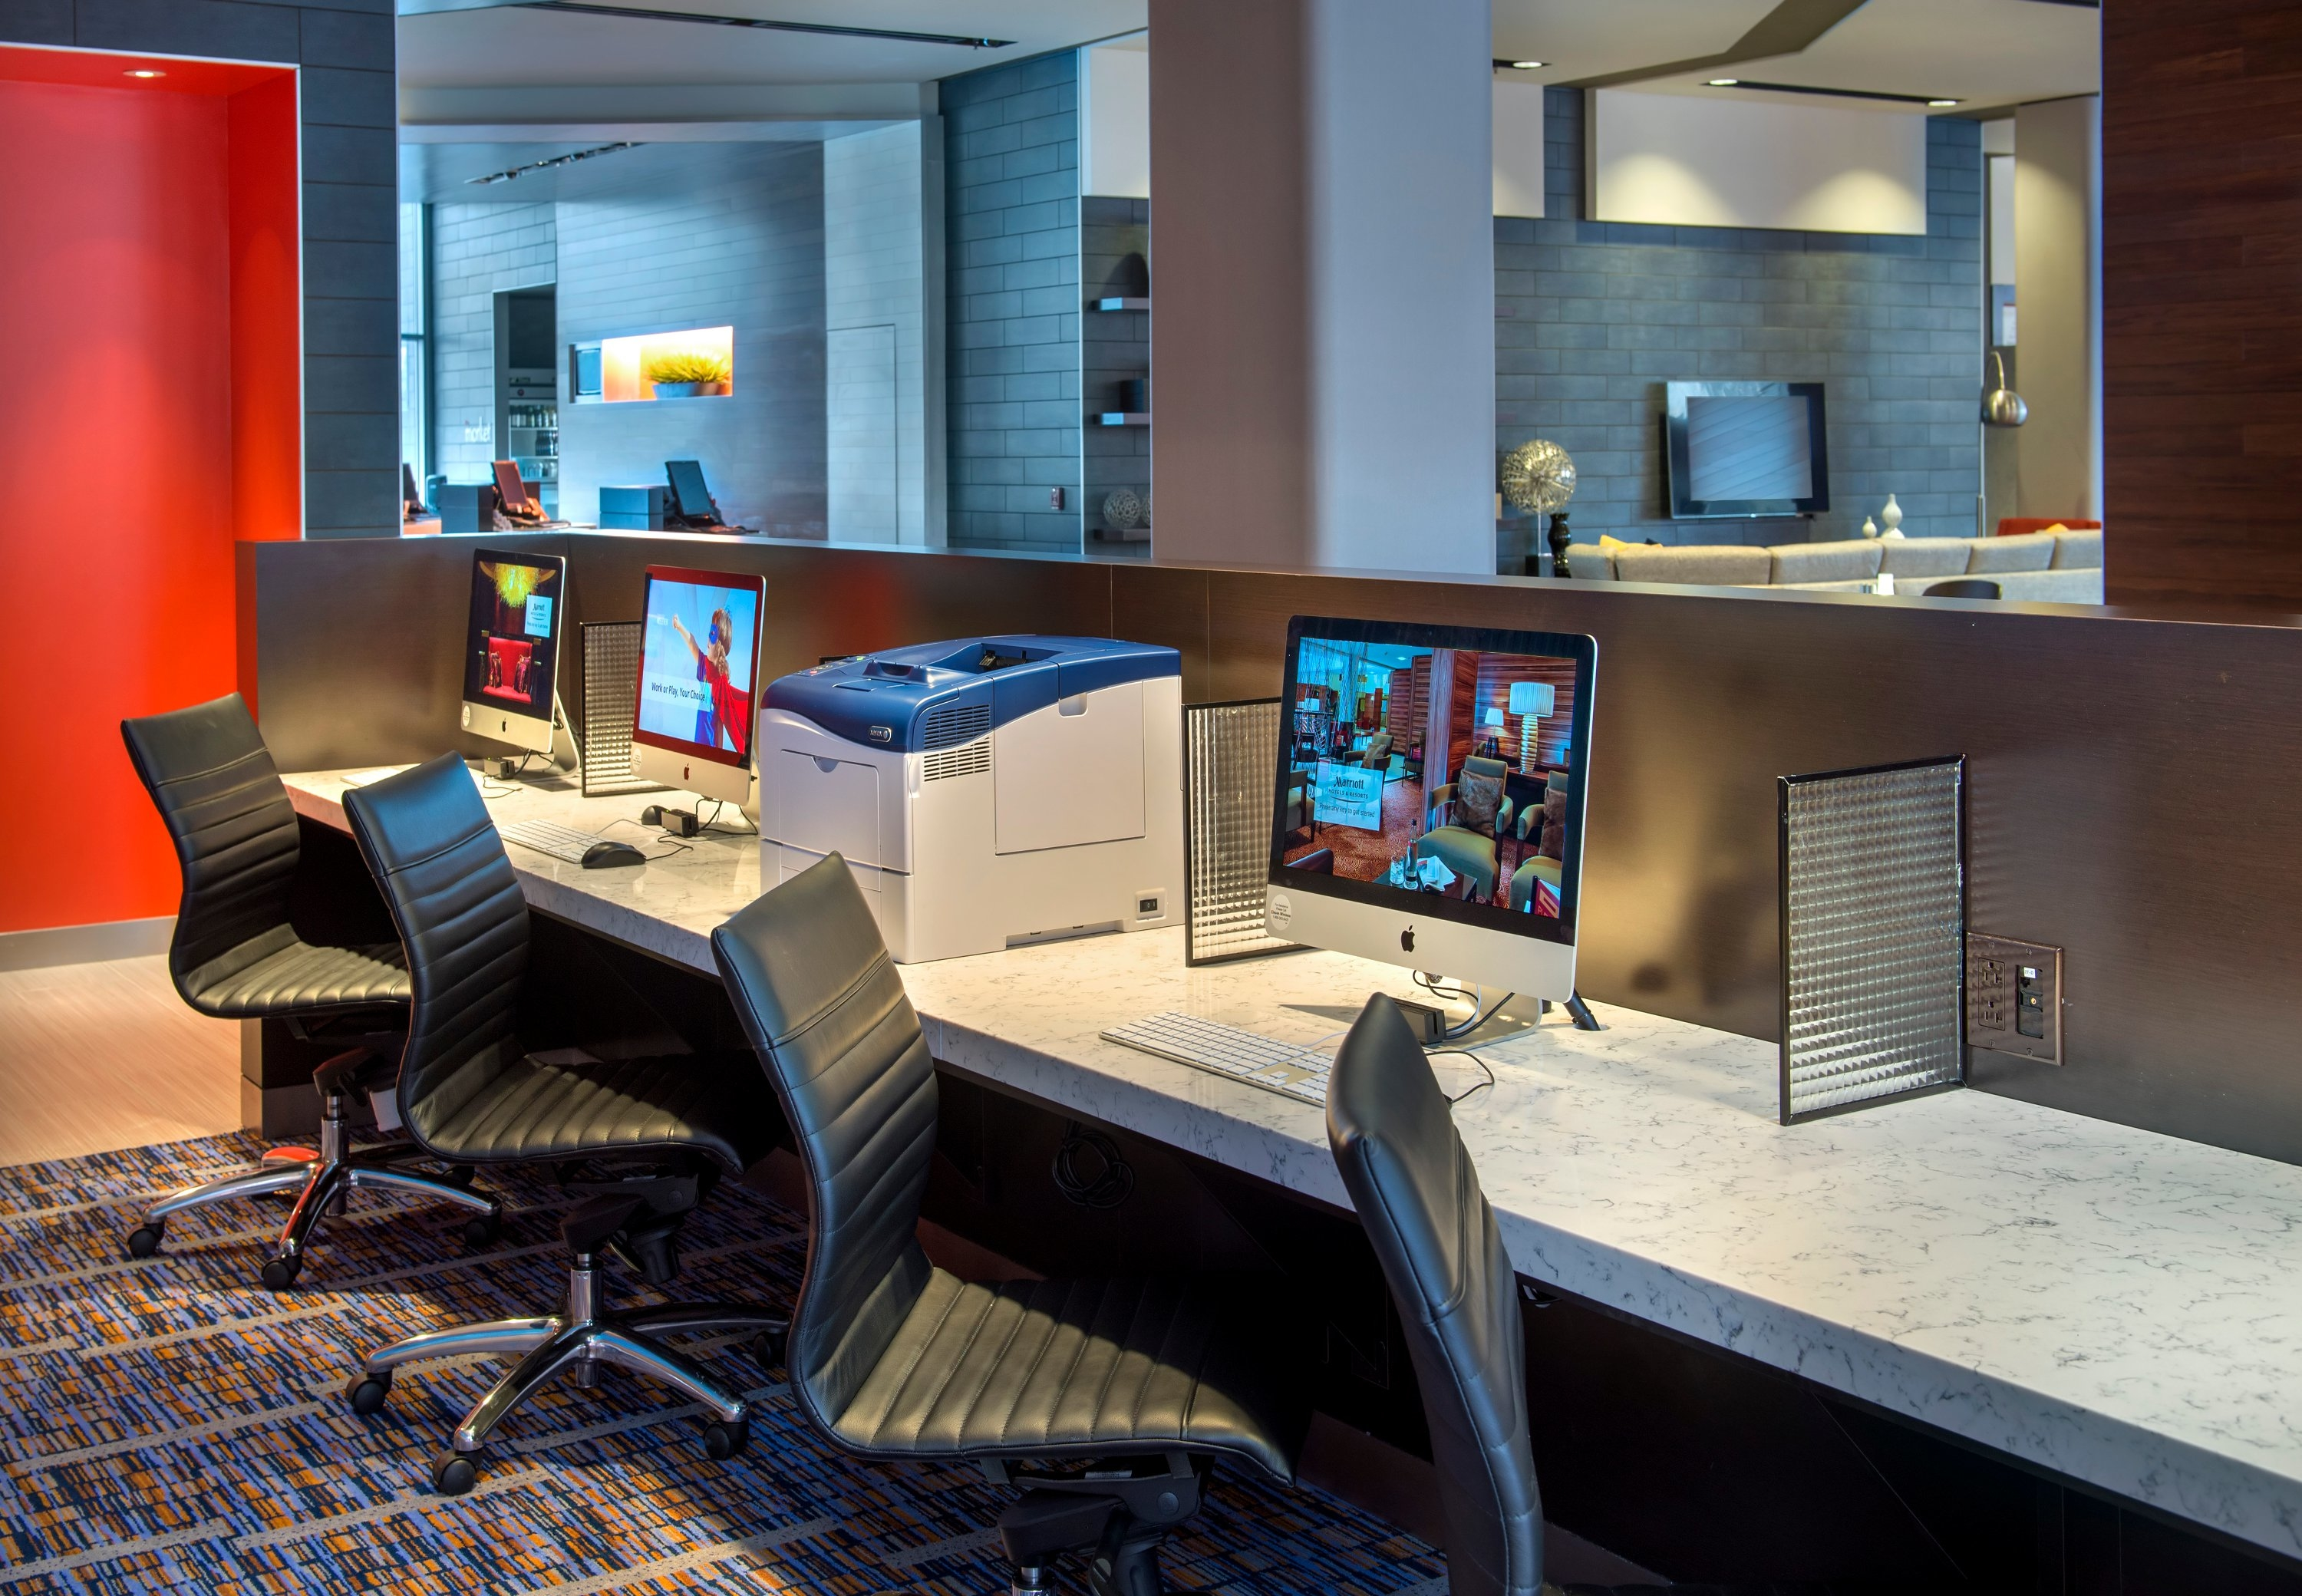 Courtyard by Marriott Philadelphia South at The Navy Yard image 13